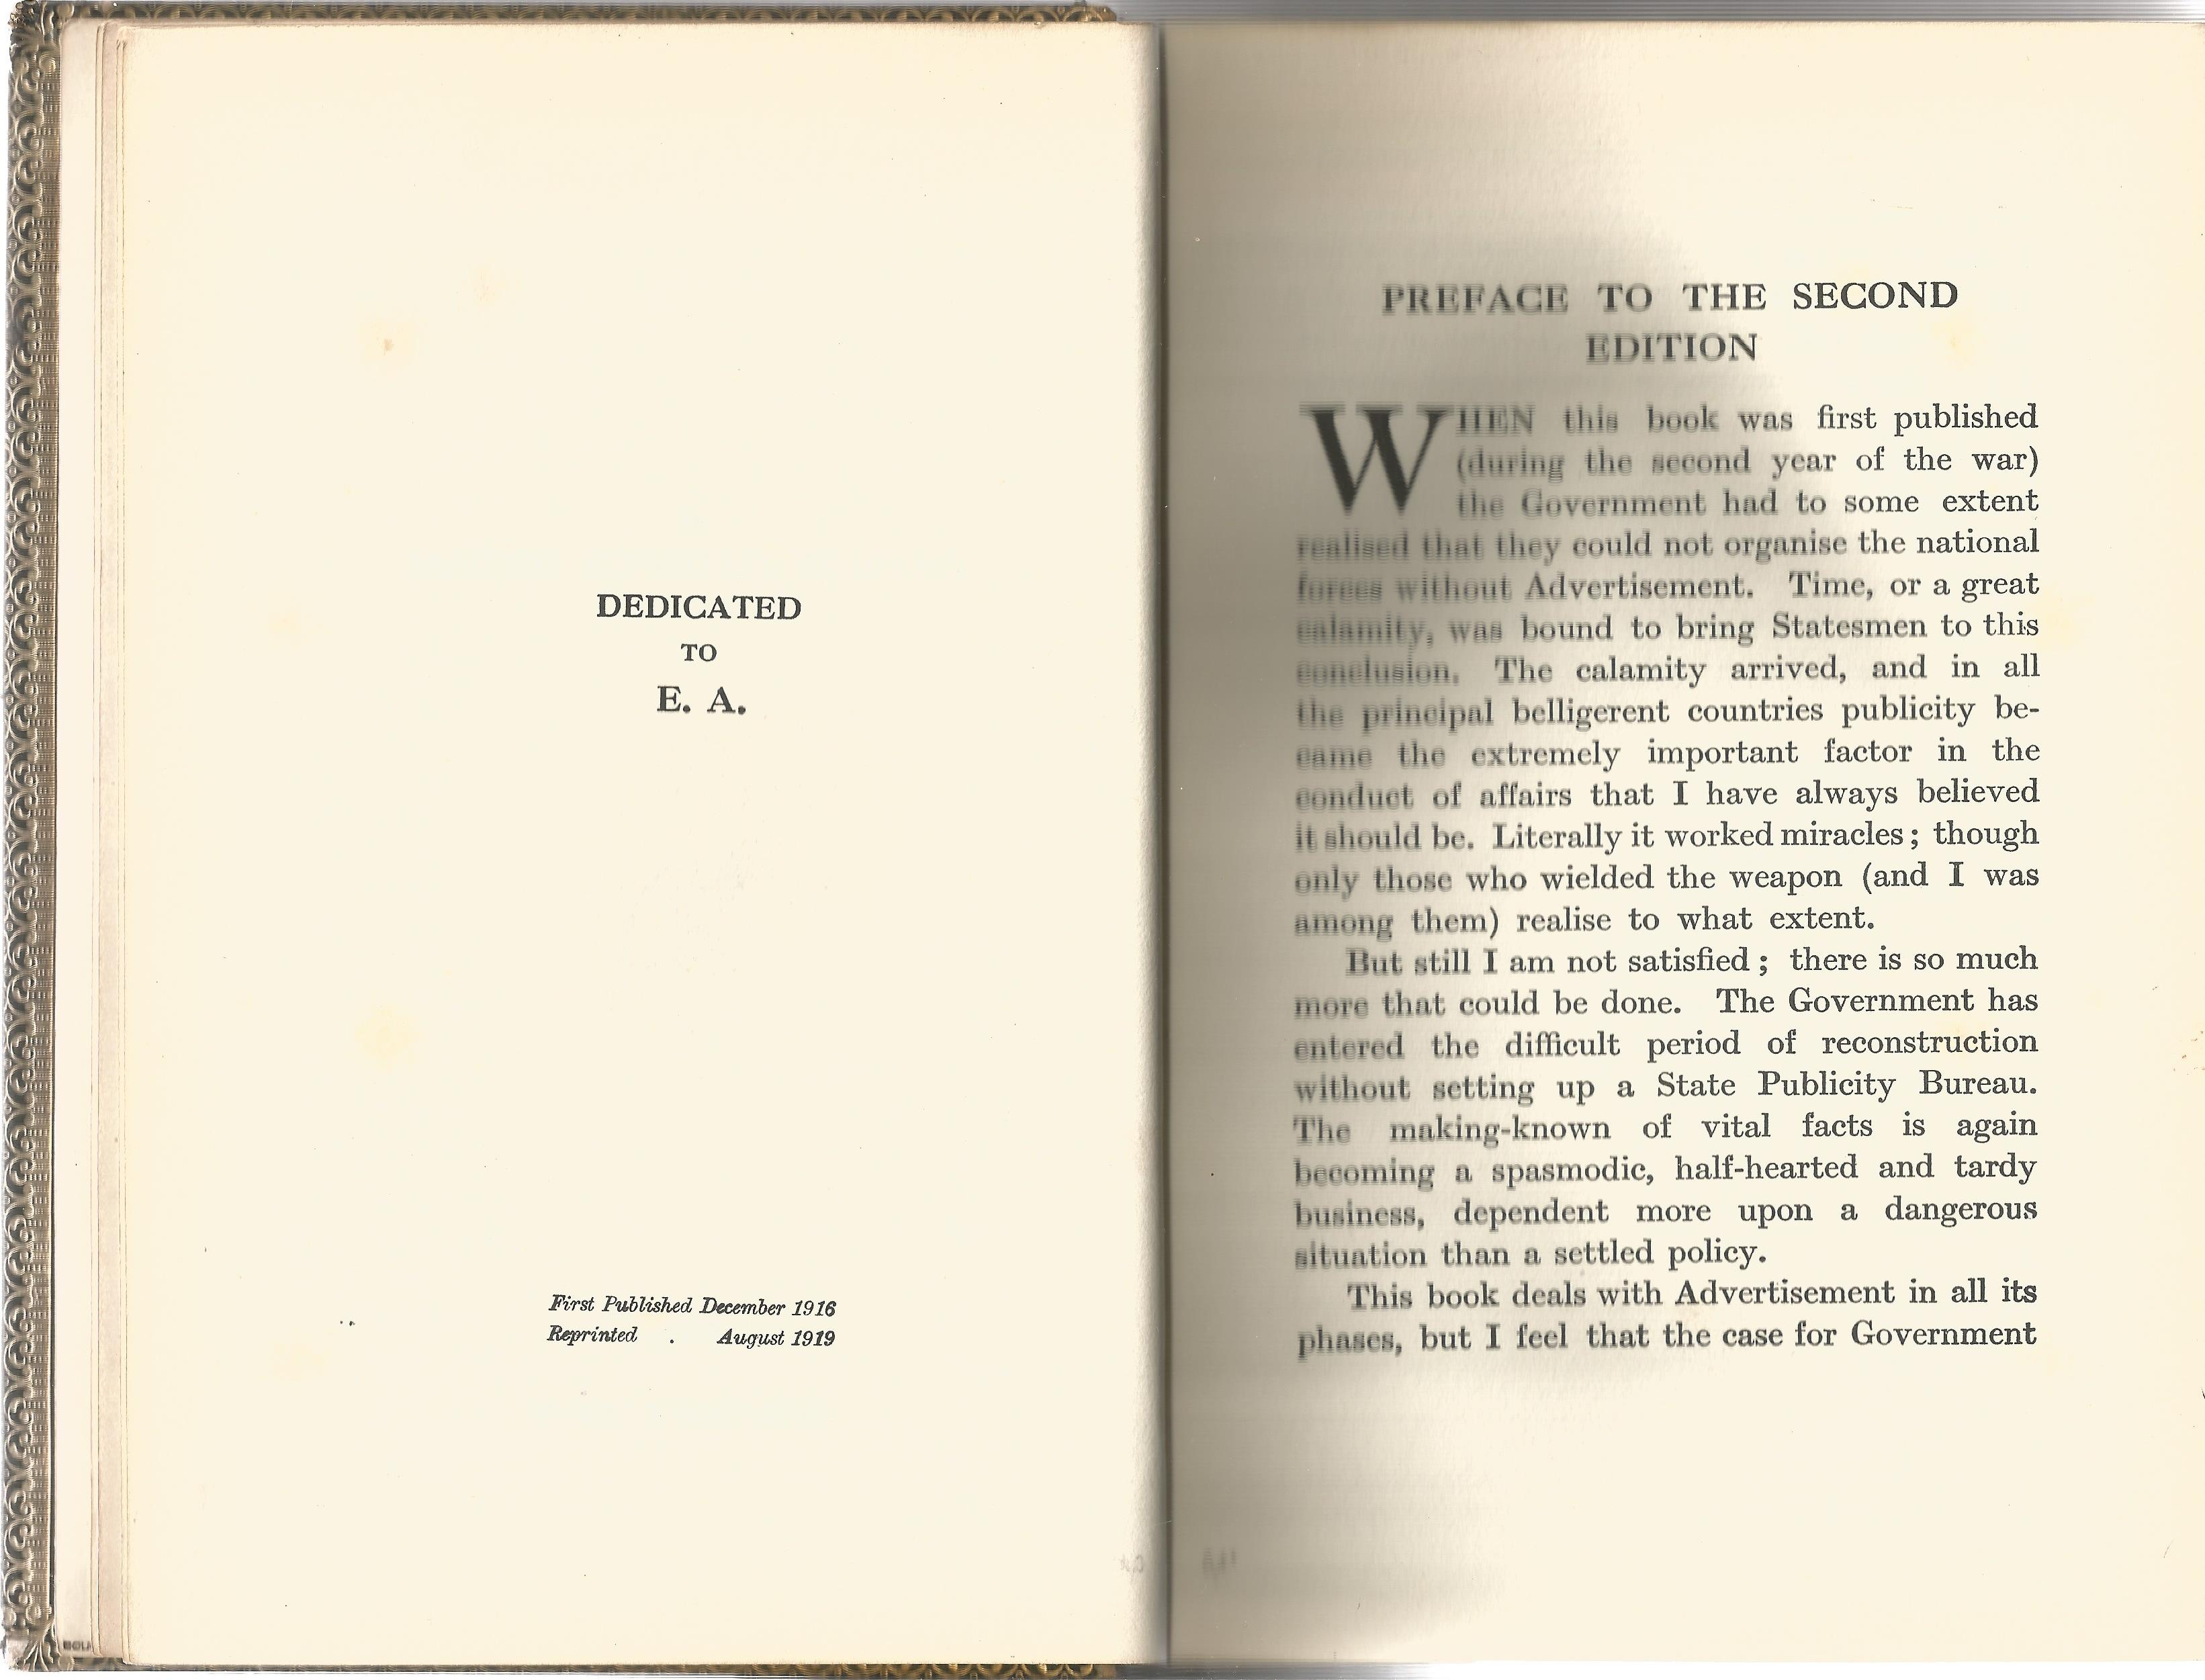 Charles Frederick Higham. Scientific Distribution. A Second Edition hardback book. Signed by Charles - Image 3 of 3